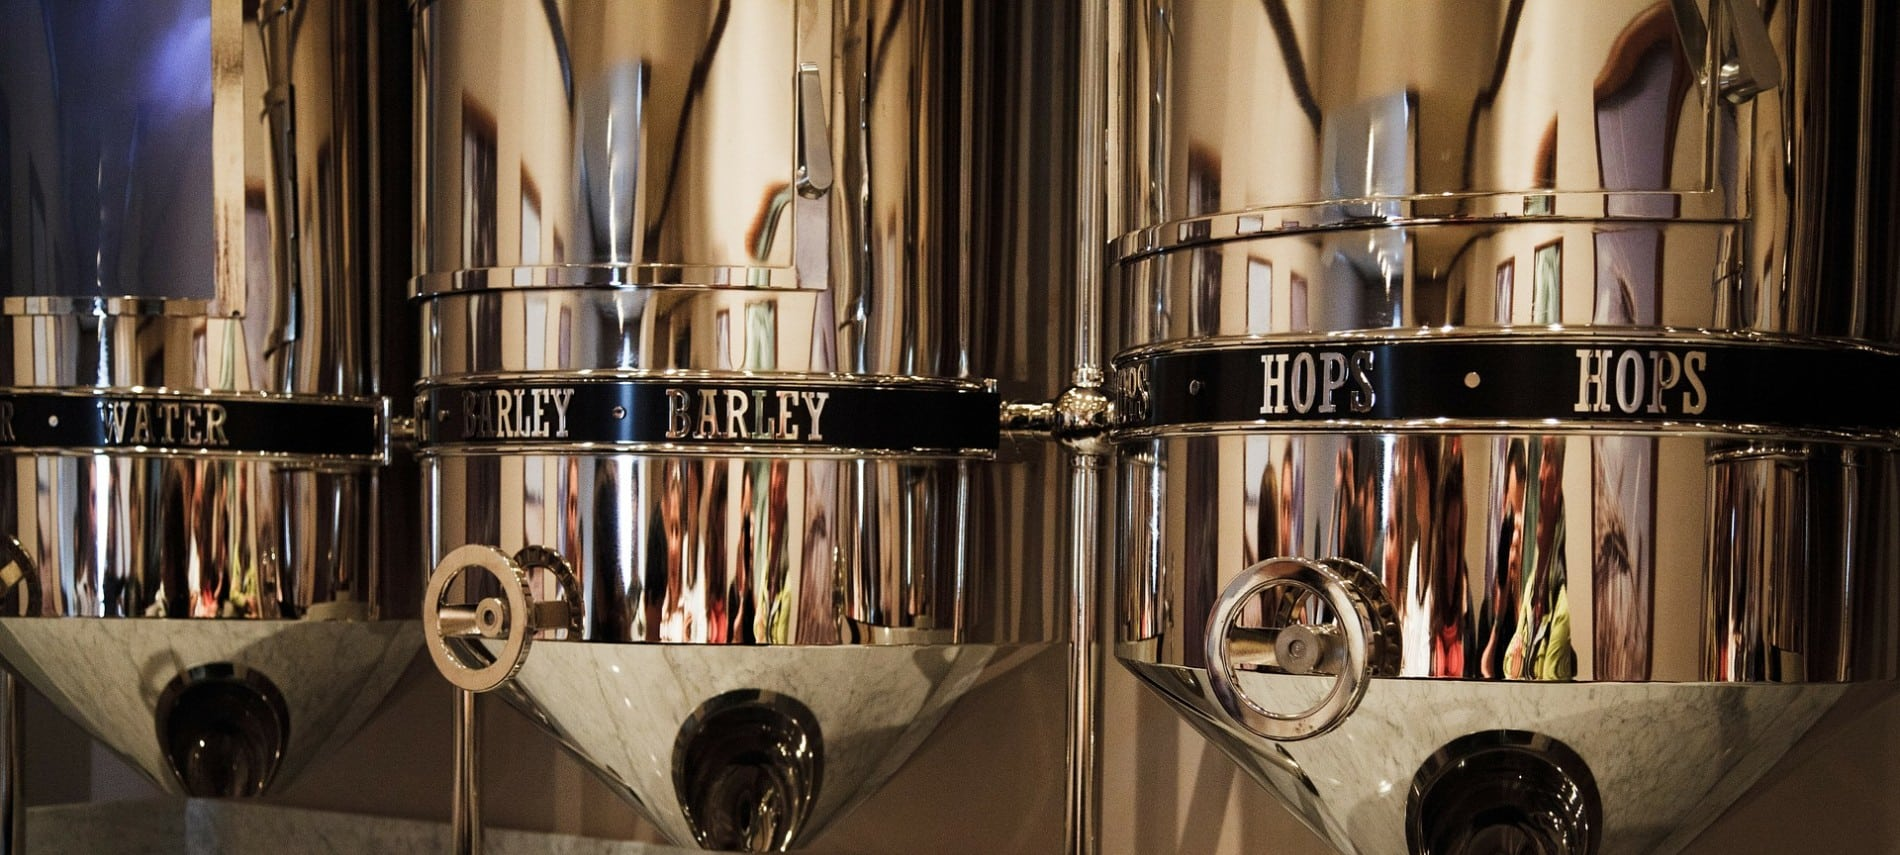 Three tall and shiny silver containers in a brewery labeled water, barley, and hops